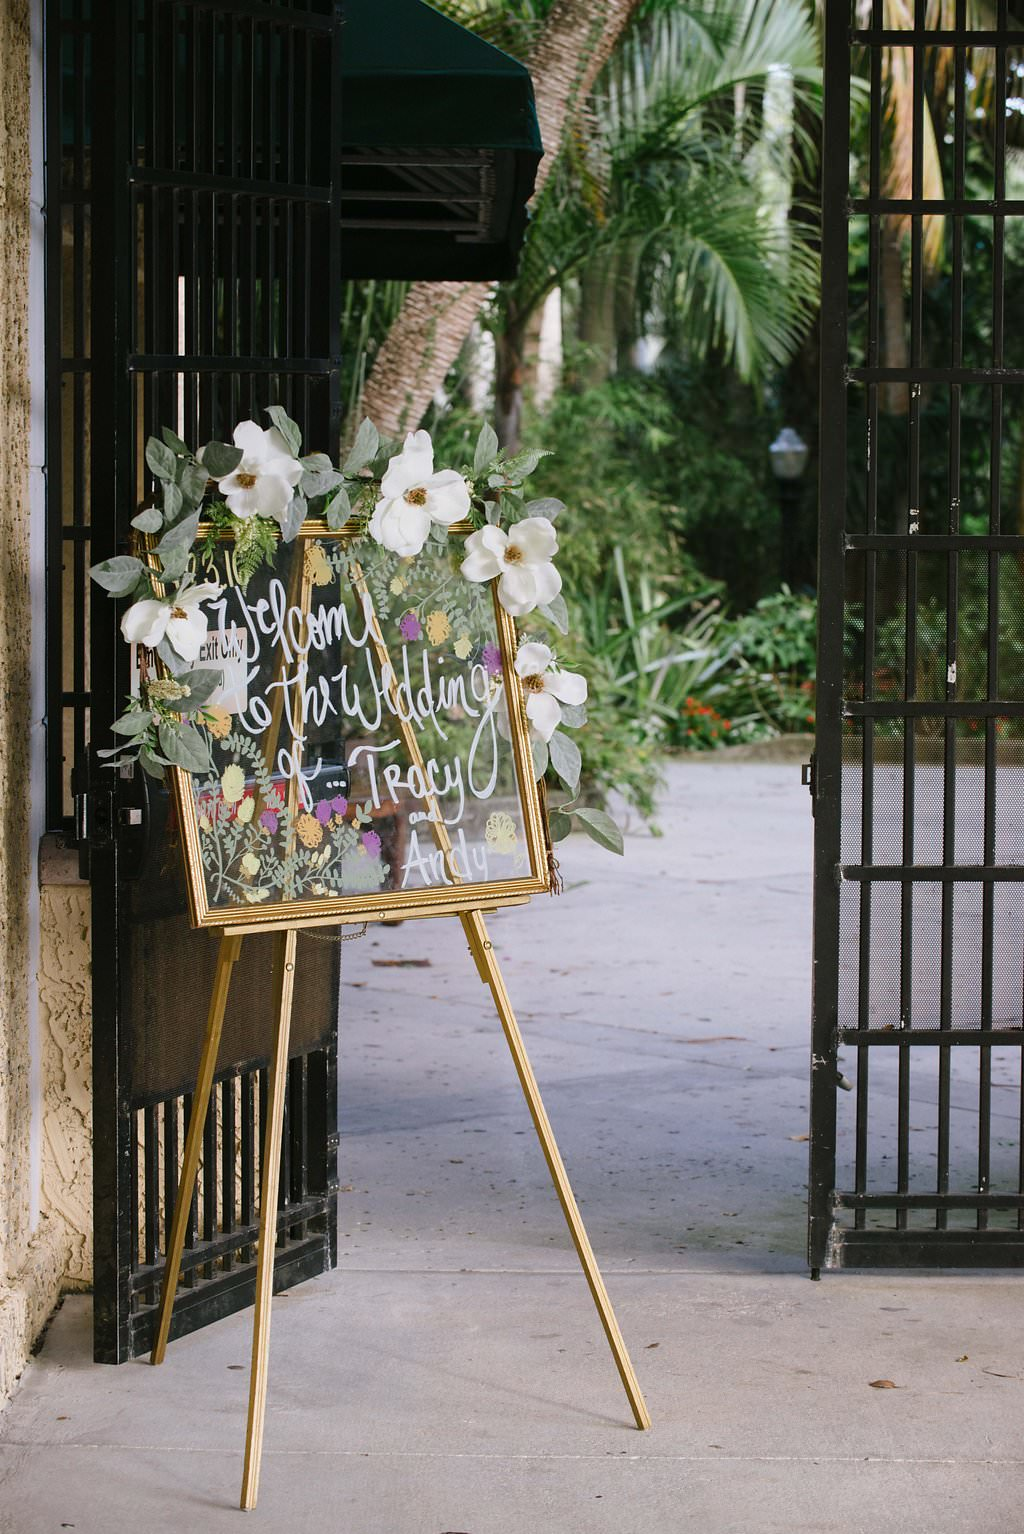 Outdoor Garden Wedding Welcome Sign, Handwritten on Glass in Gold Frame with Large White Flowers and Greenery